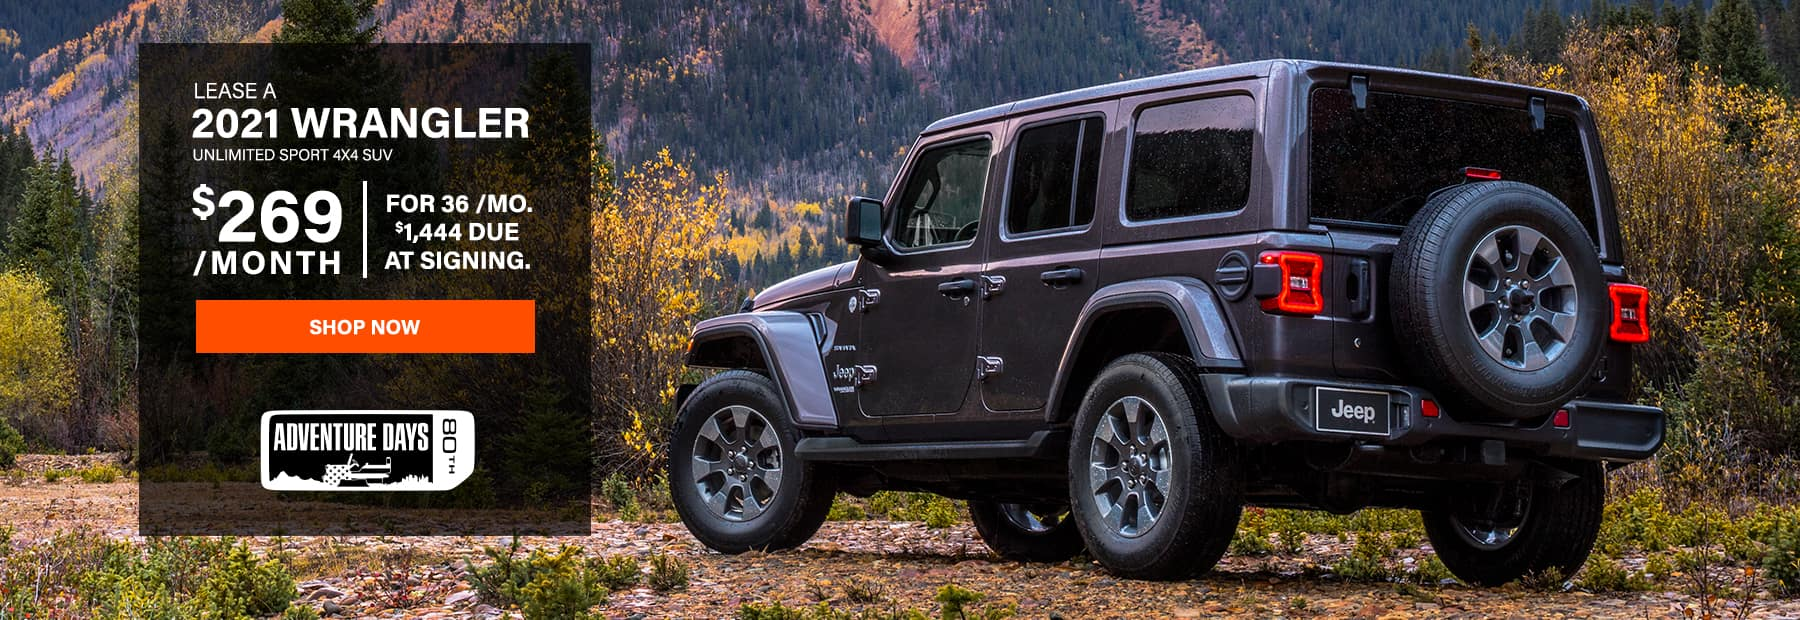 Lease a 2021 Jeep Wrangler Unlimited Sport 4x4 SUV